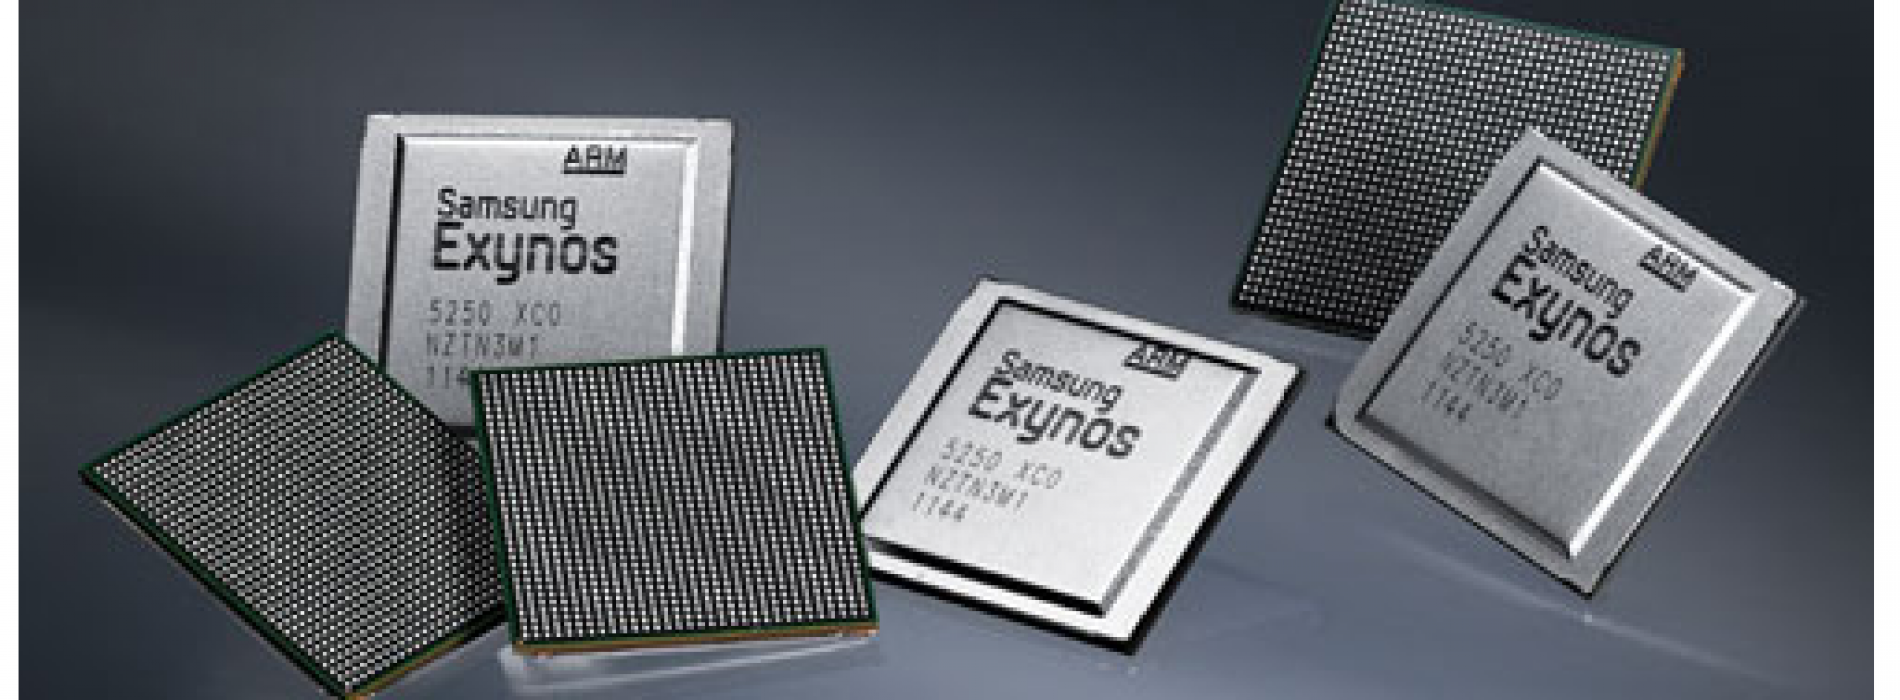 Dual-core 2GHz Samsung Exnyos 5250 expected in just a few short months